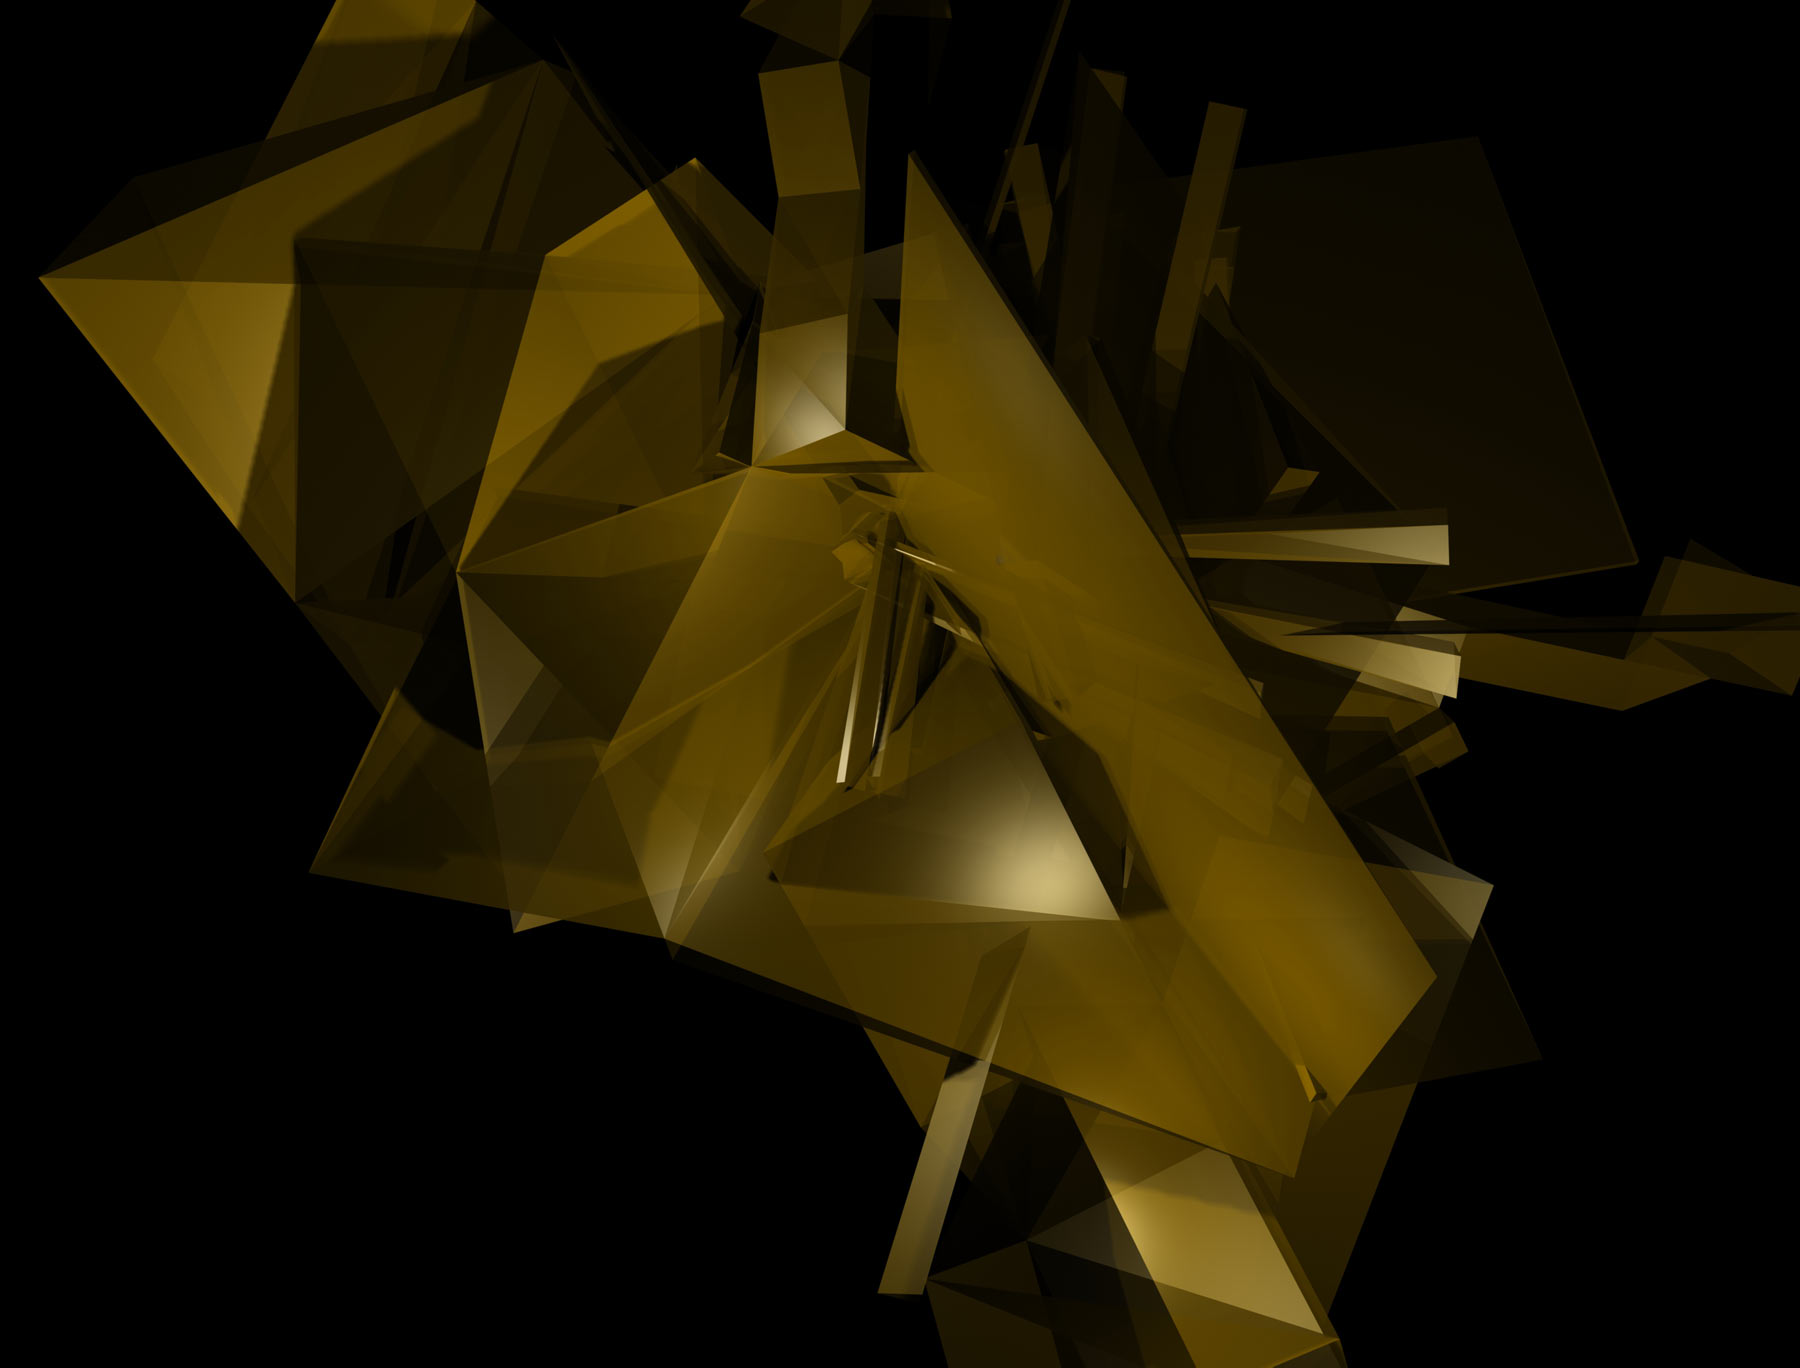 Abstract Shape, 3d, Abstract, Black, Digital, HQ Photo